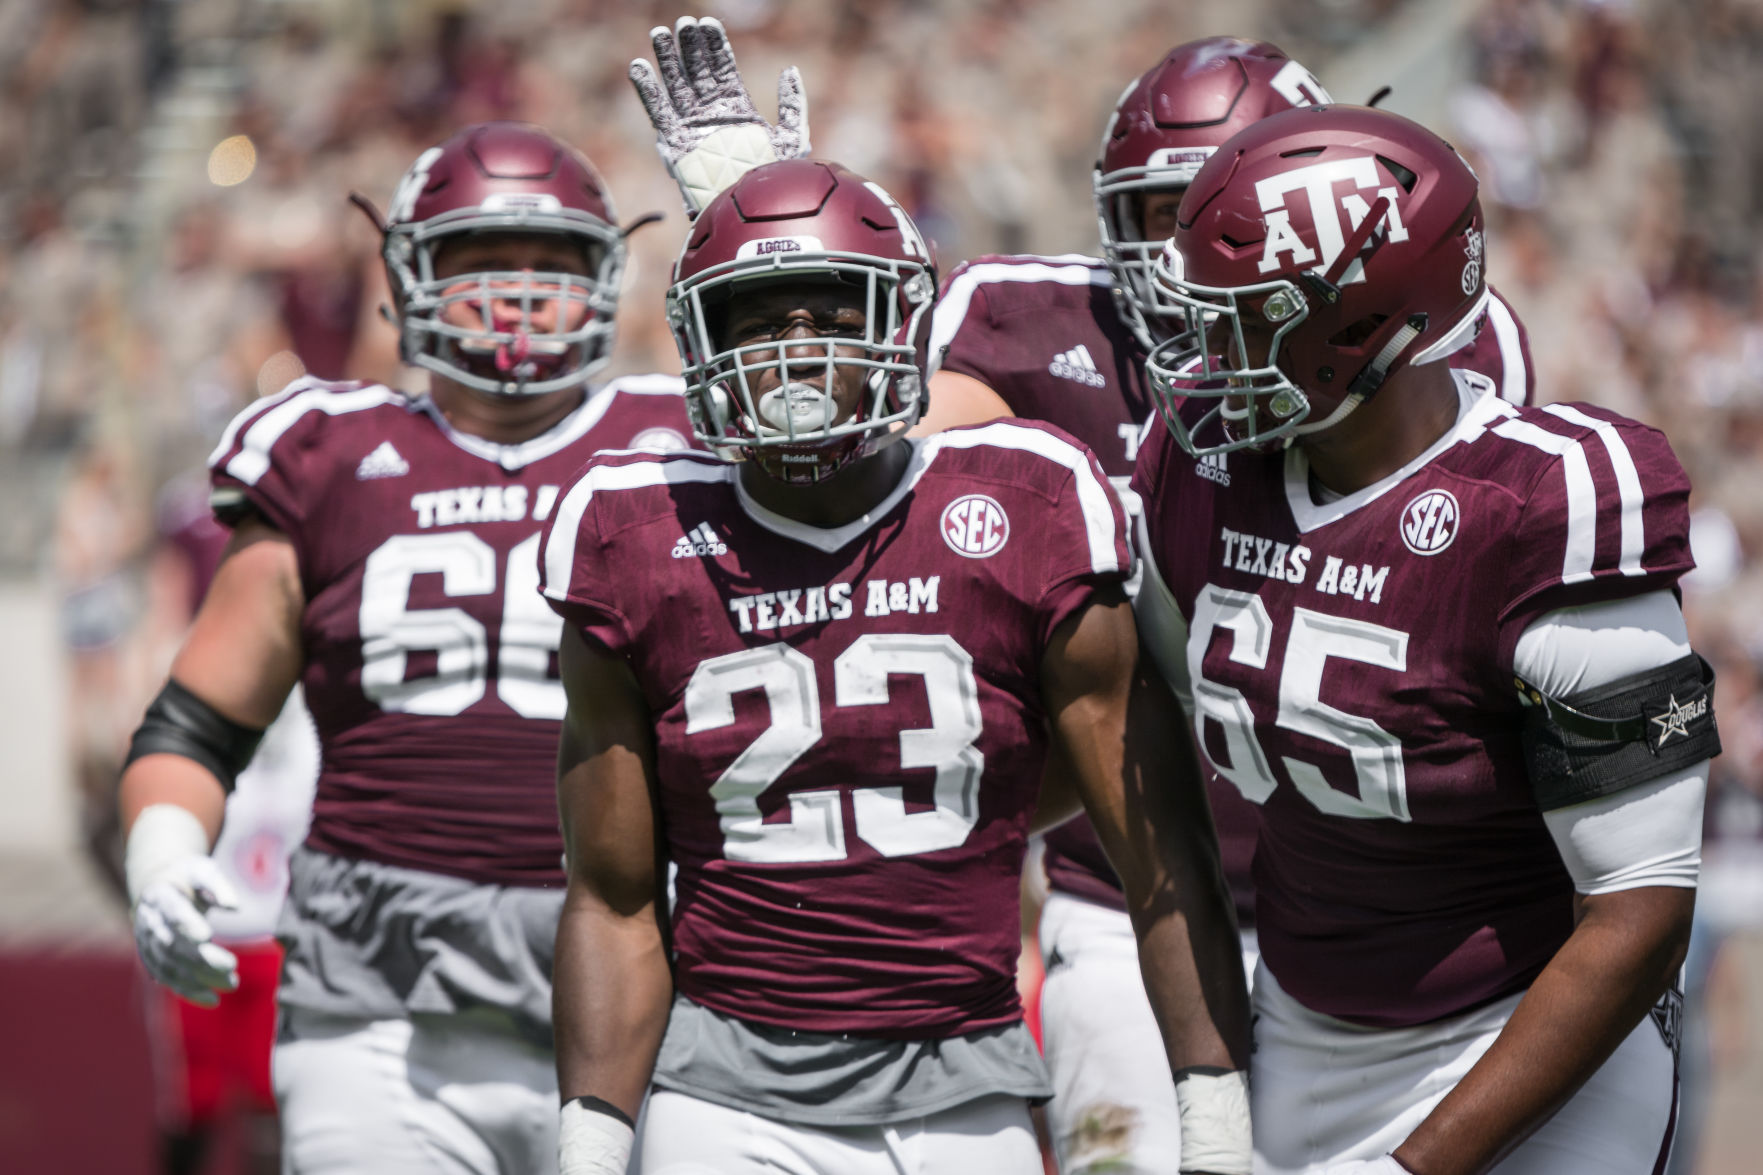 Texas A&M freshman Will Gunnell apologizes for 'ill-advised' gesture at fans